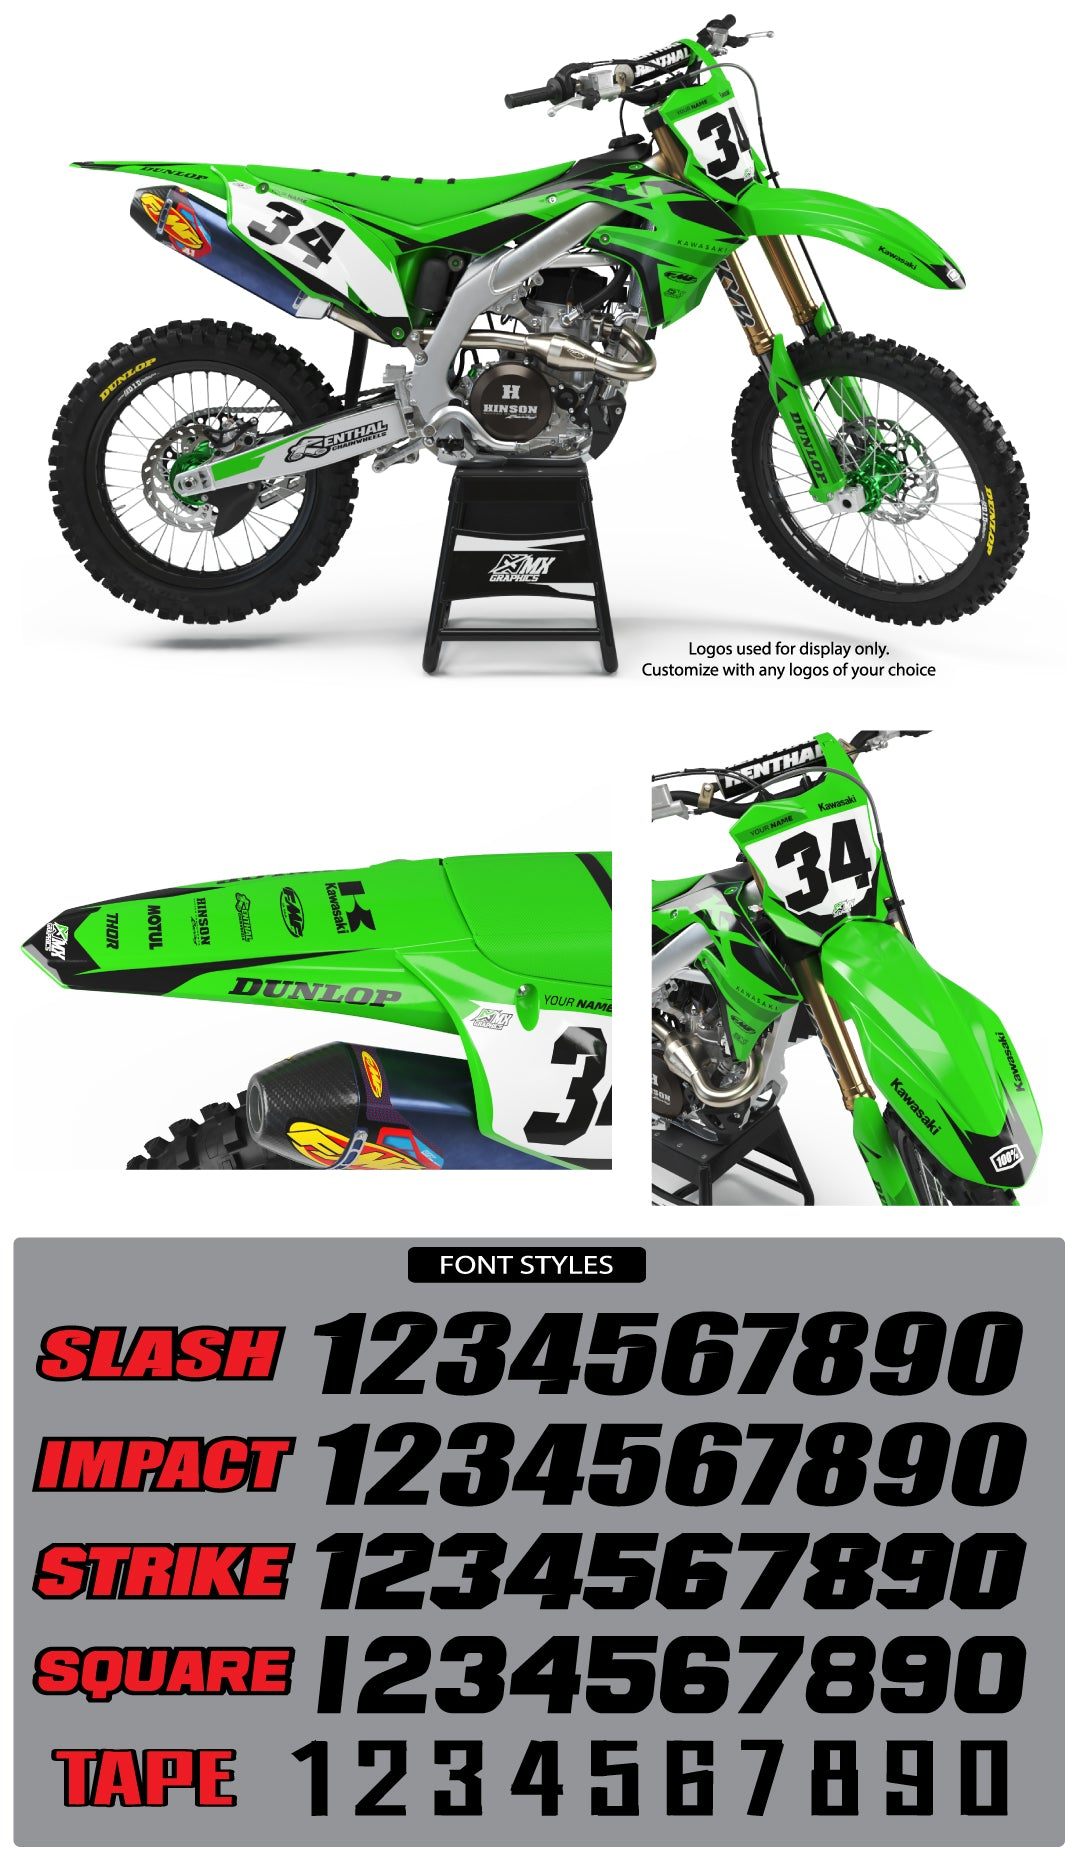 Kawasaki MX27 Graphic Kit